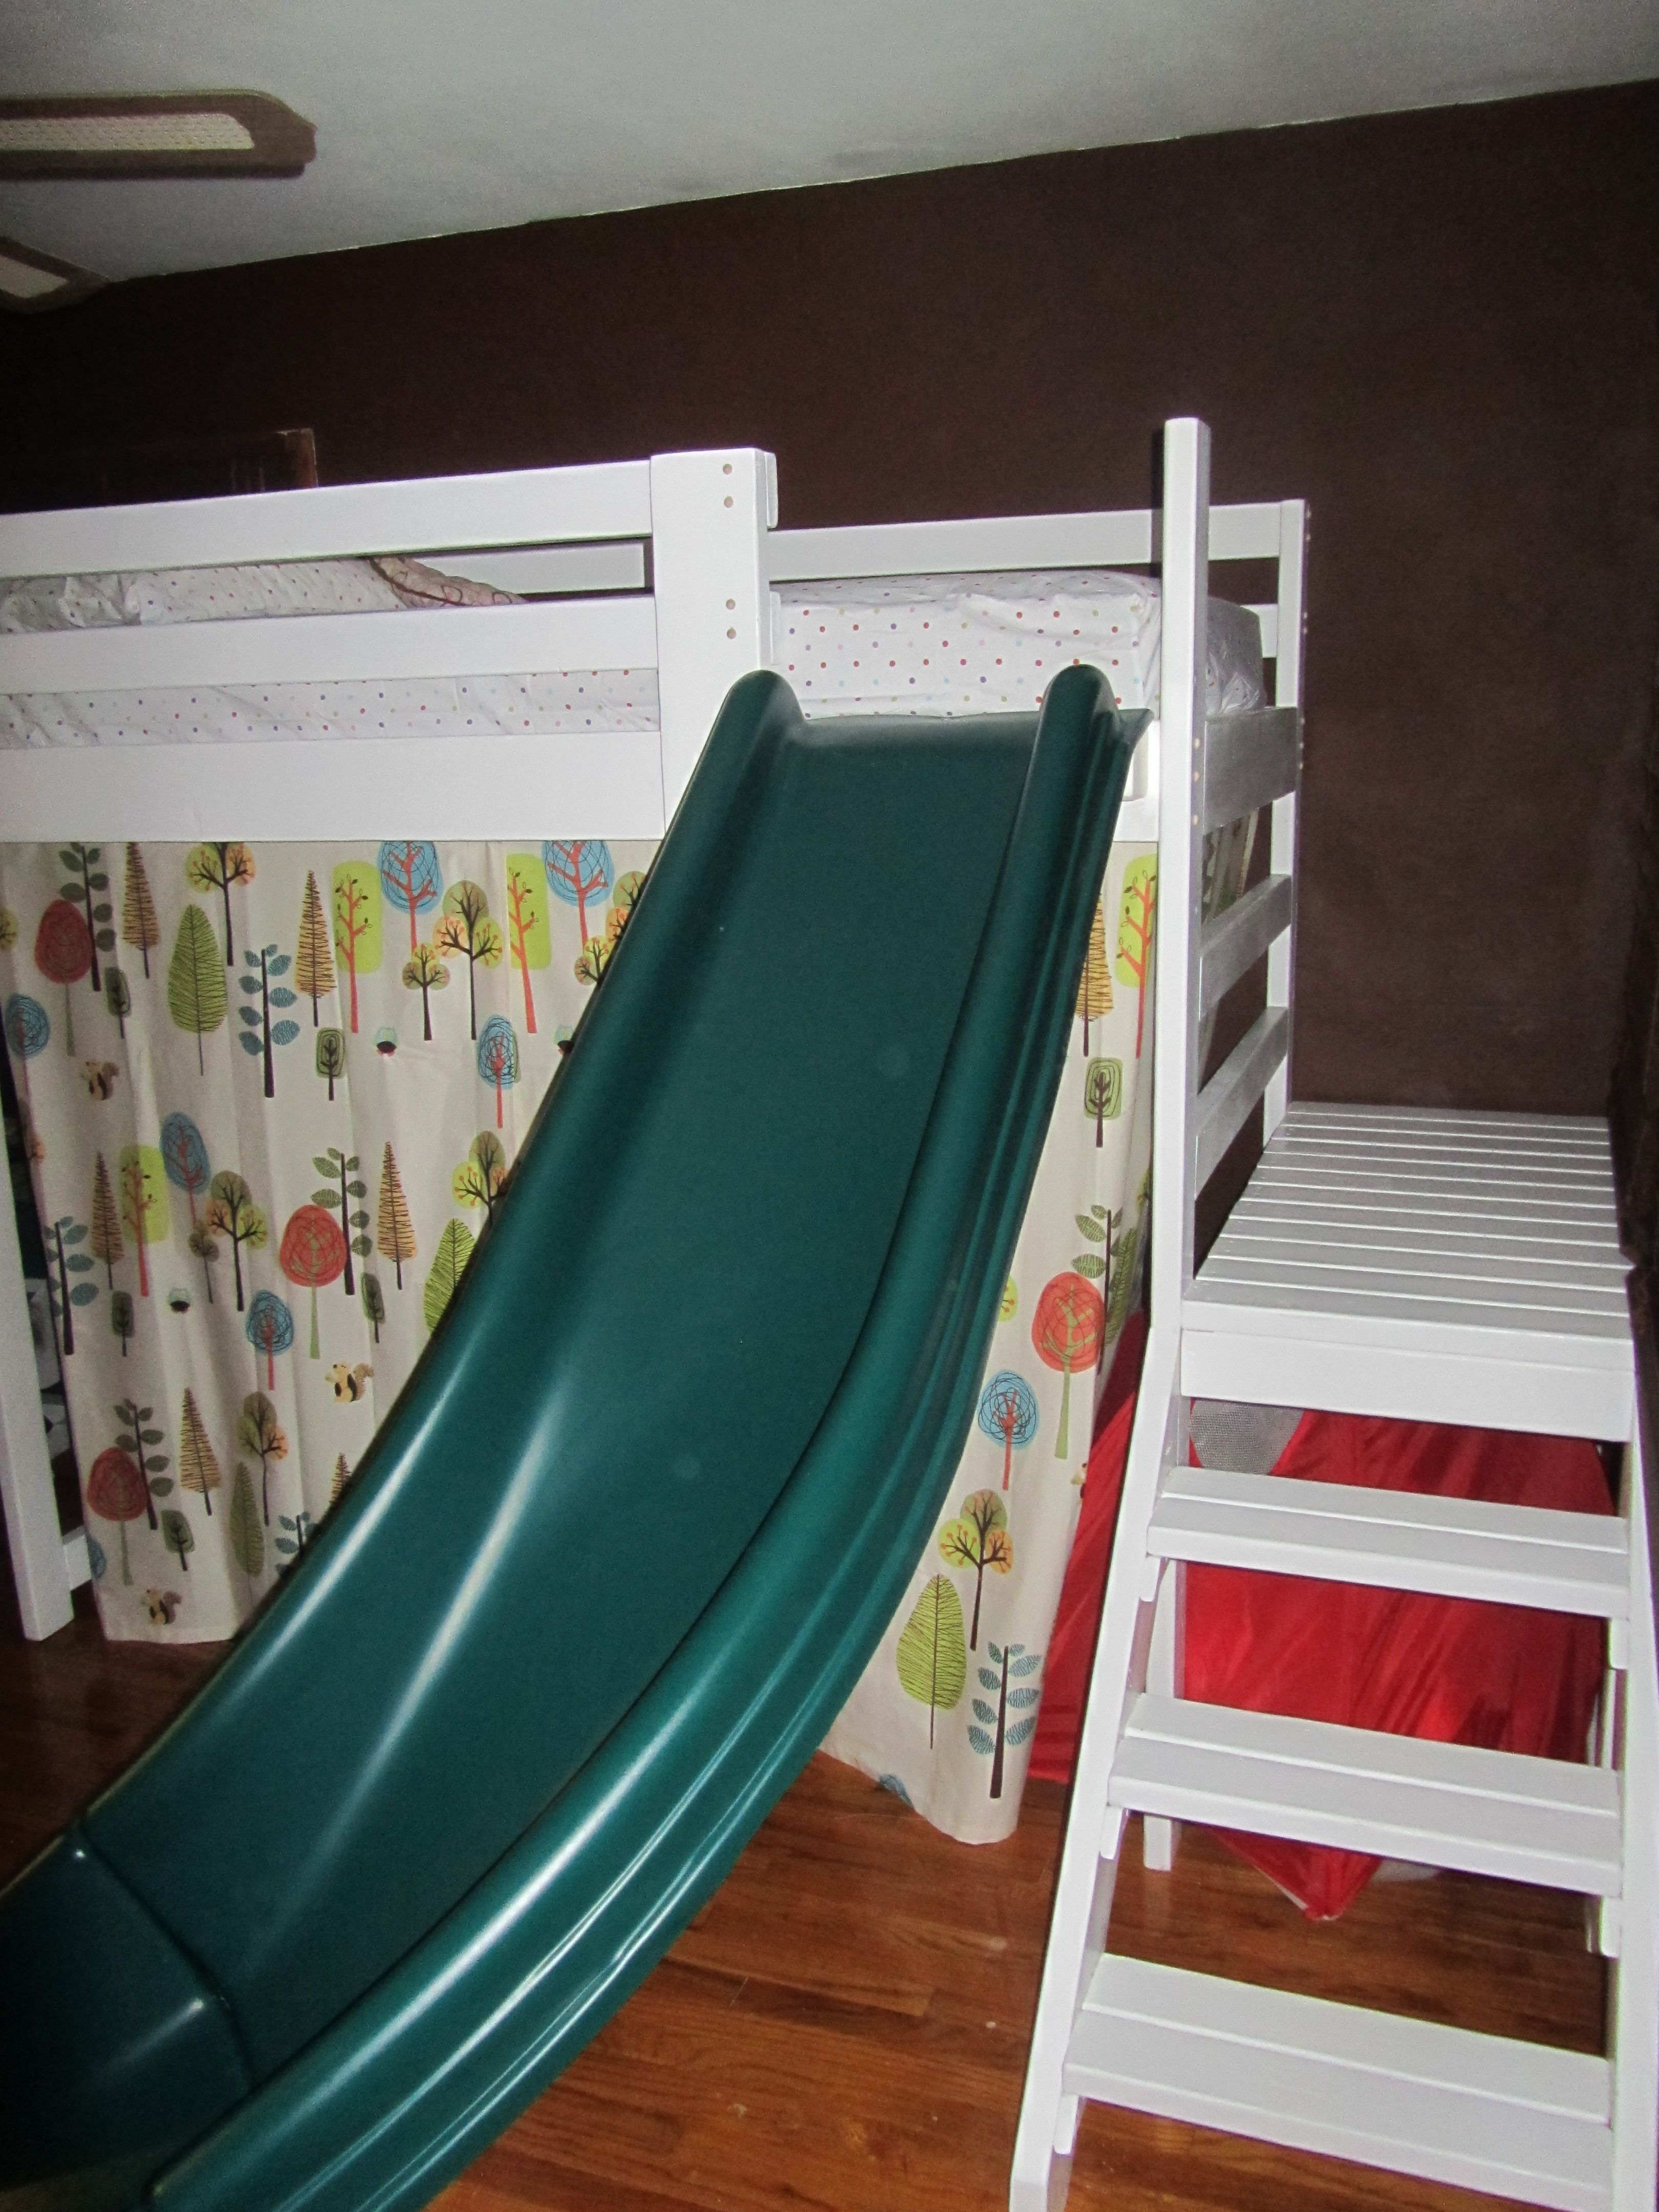 I like the steps and slide at end of the bed kids bed